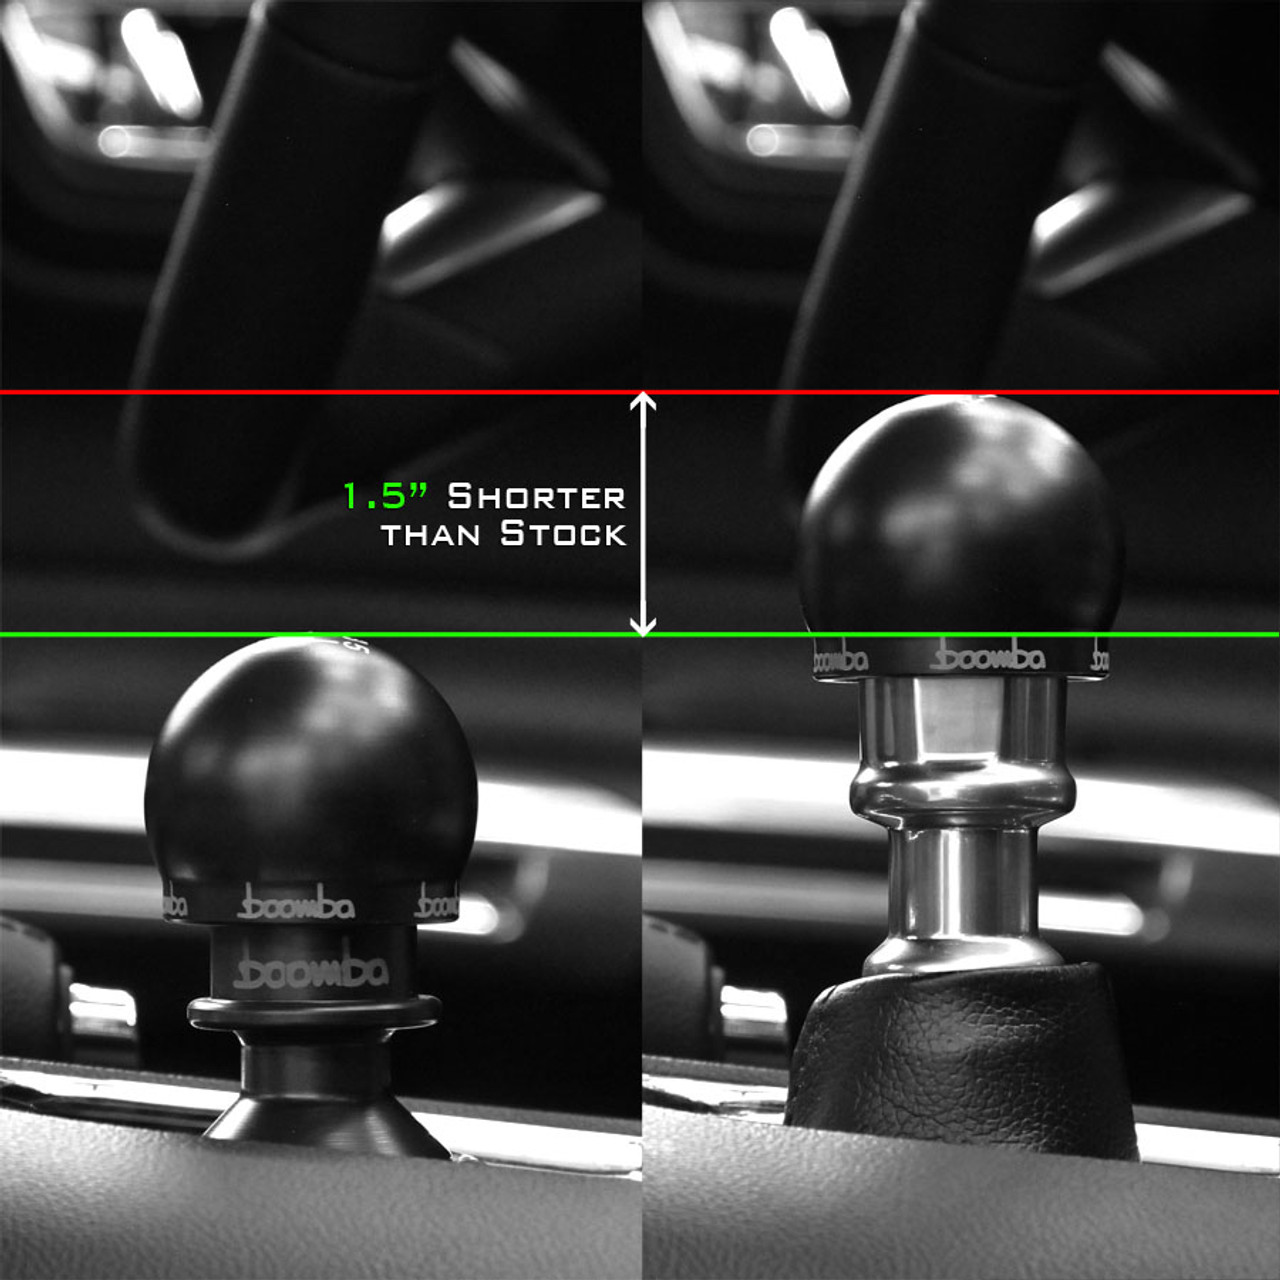 2015-2017 Ford Mustang Short Throw Shifter